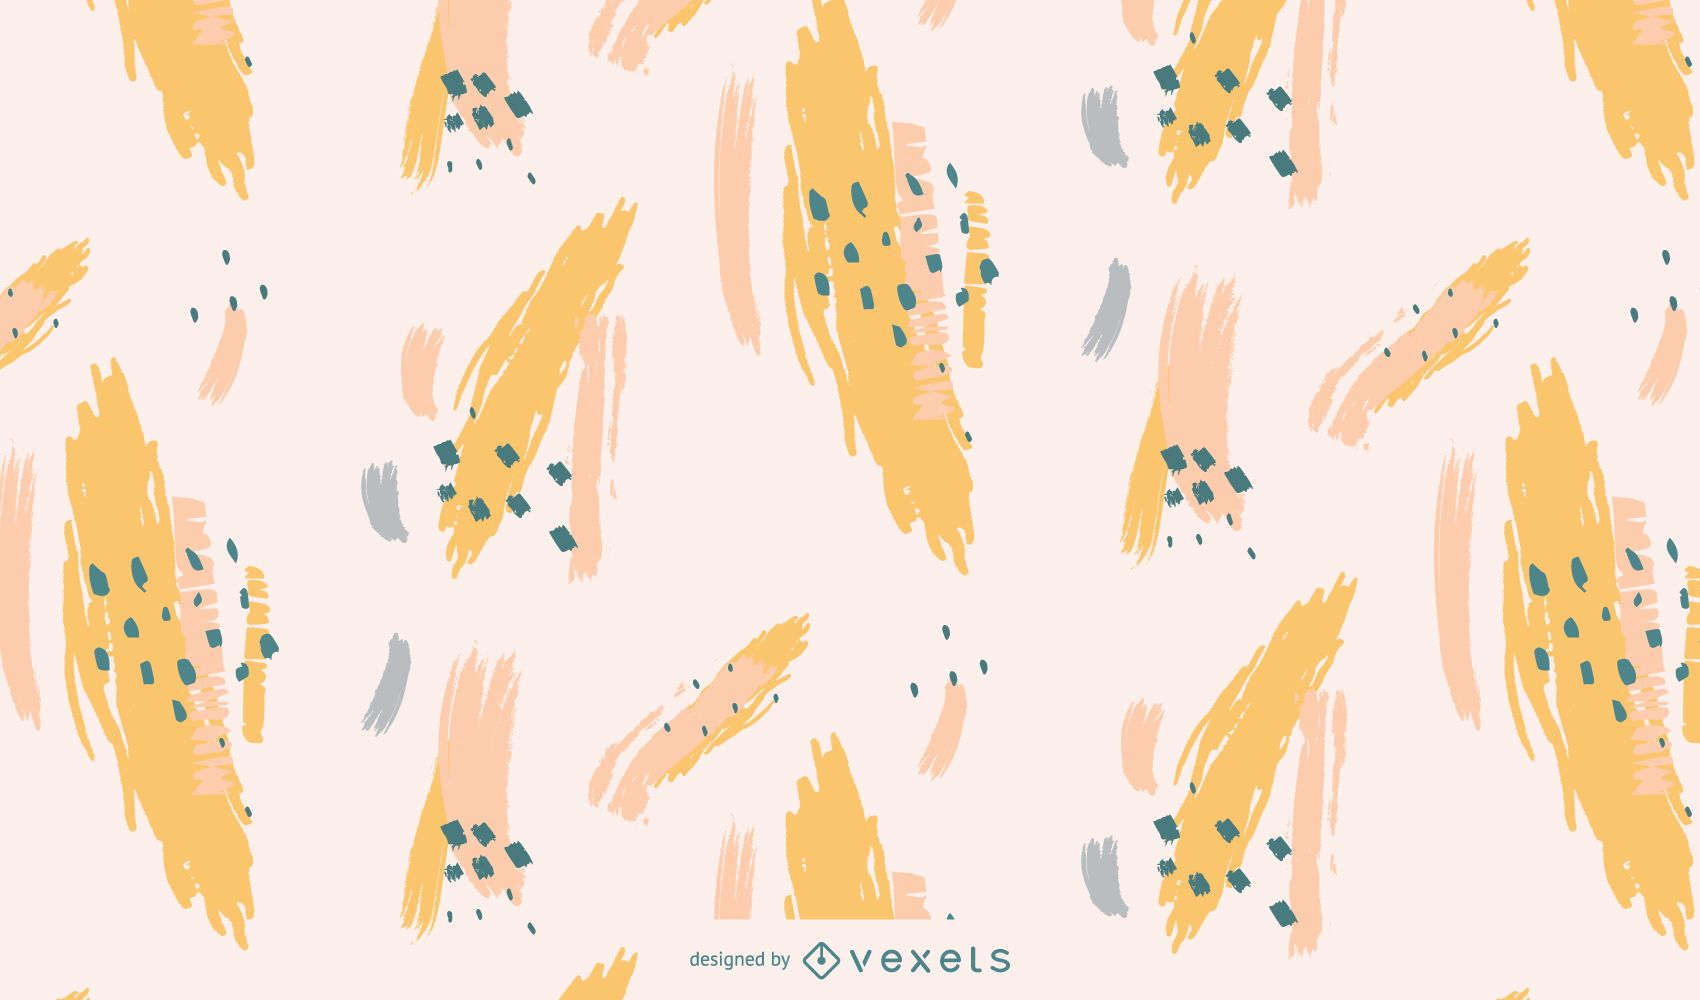 Artistic abstract pattern design